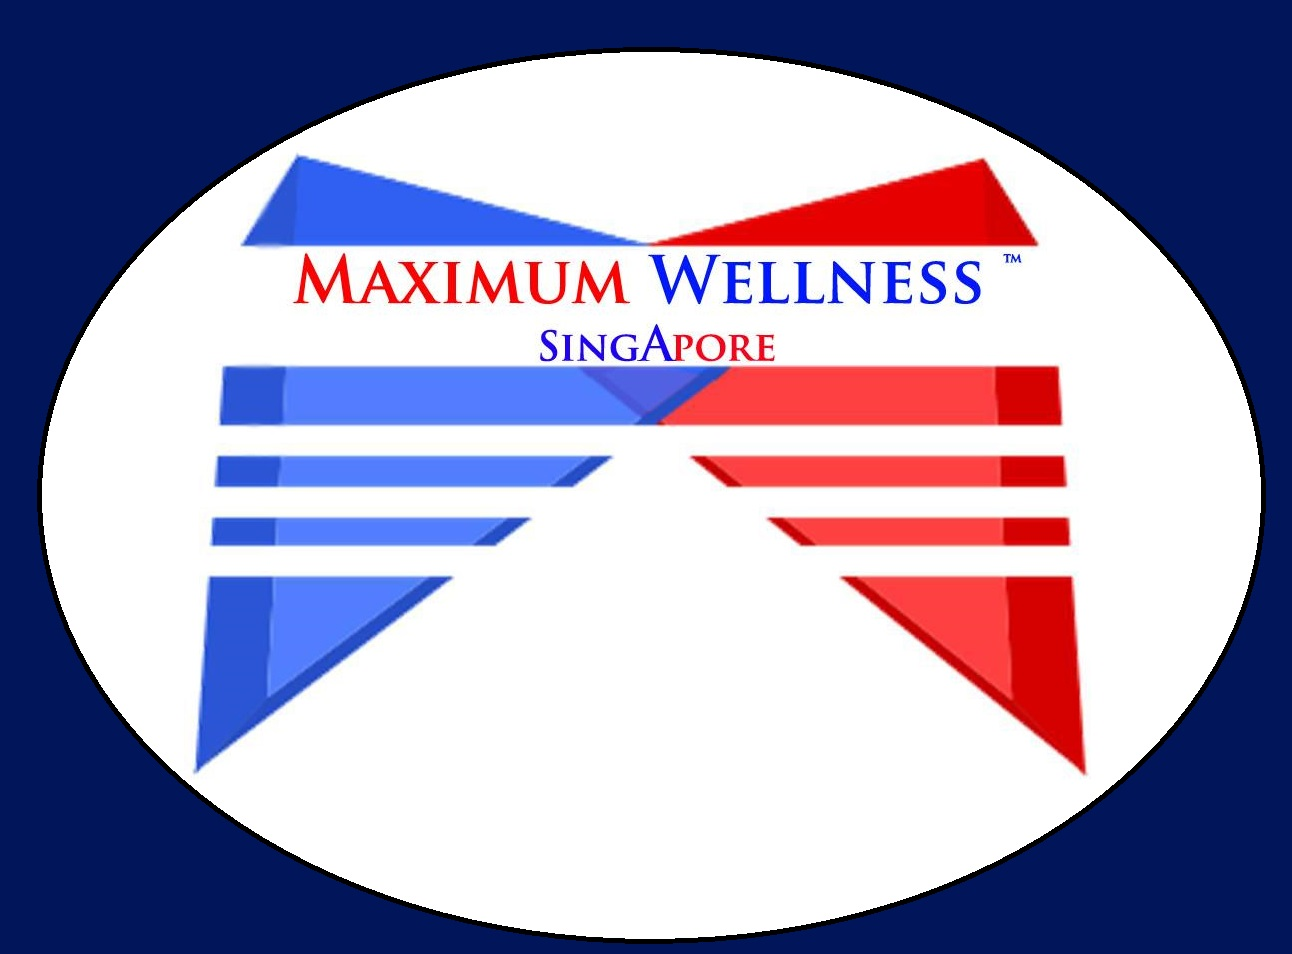 Maximum Wellness